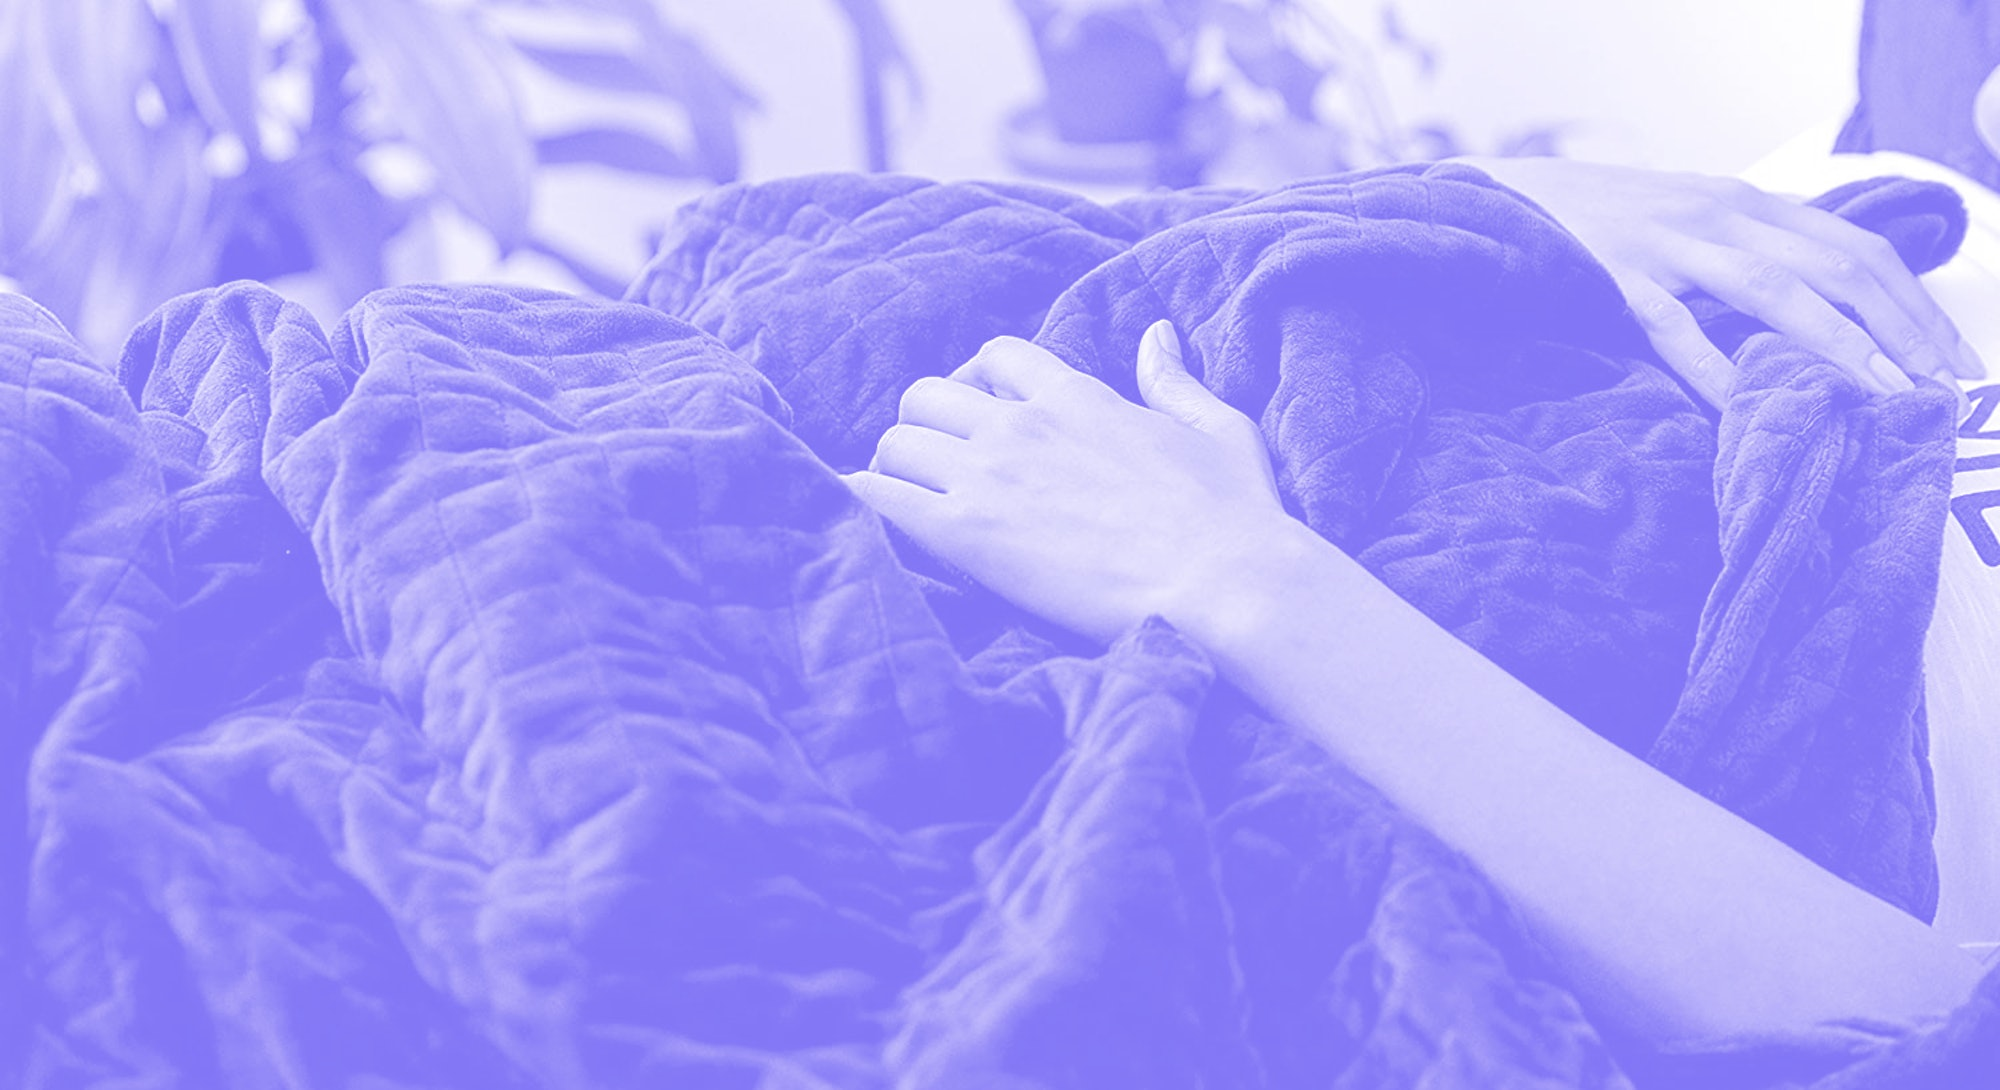 A person lies beneath a navy blue weighted Gravity blanket, their hands on top of the blanket.